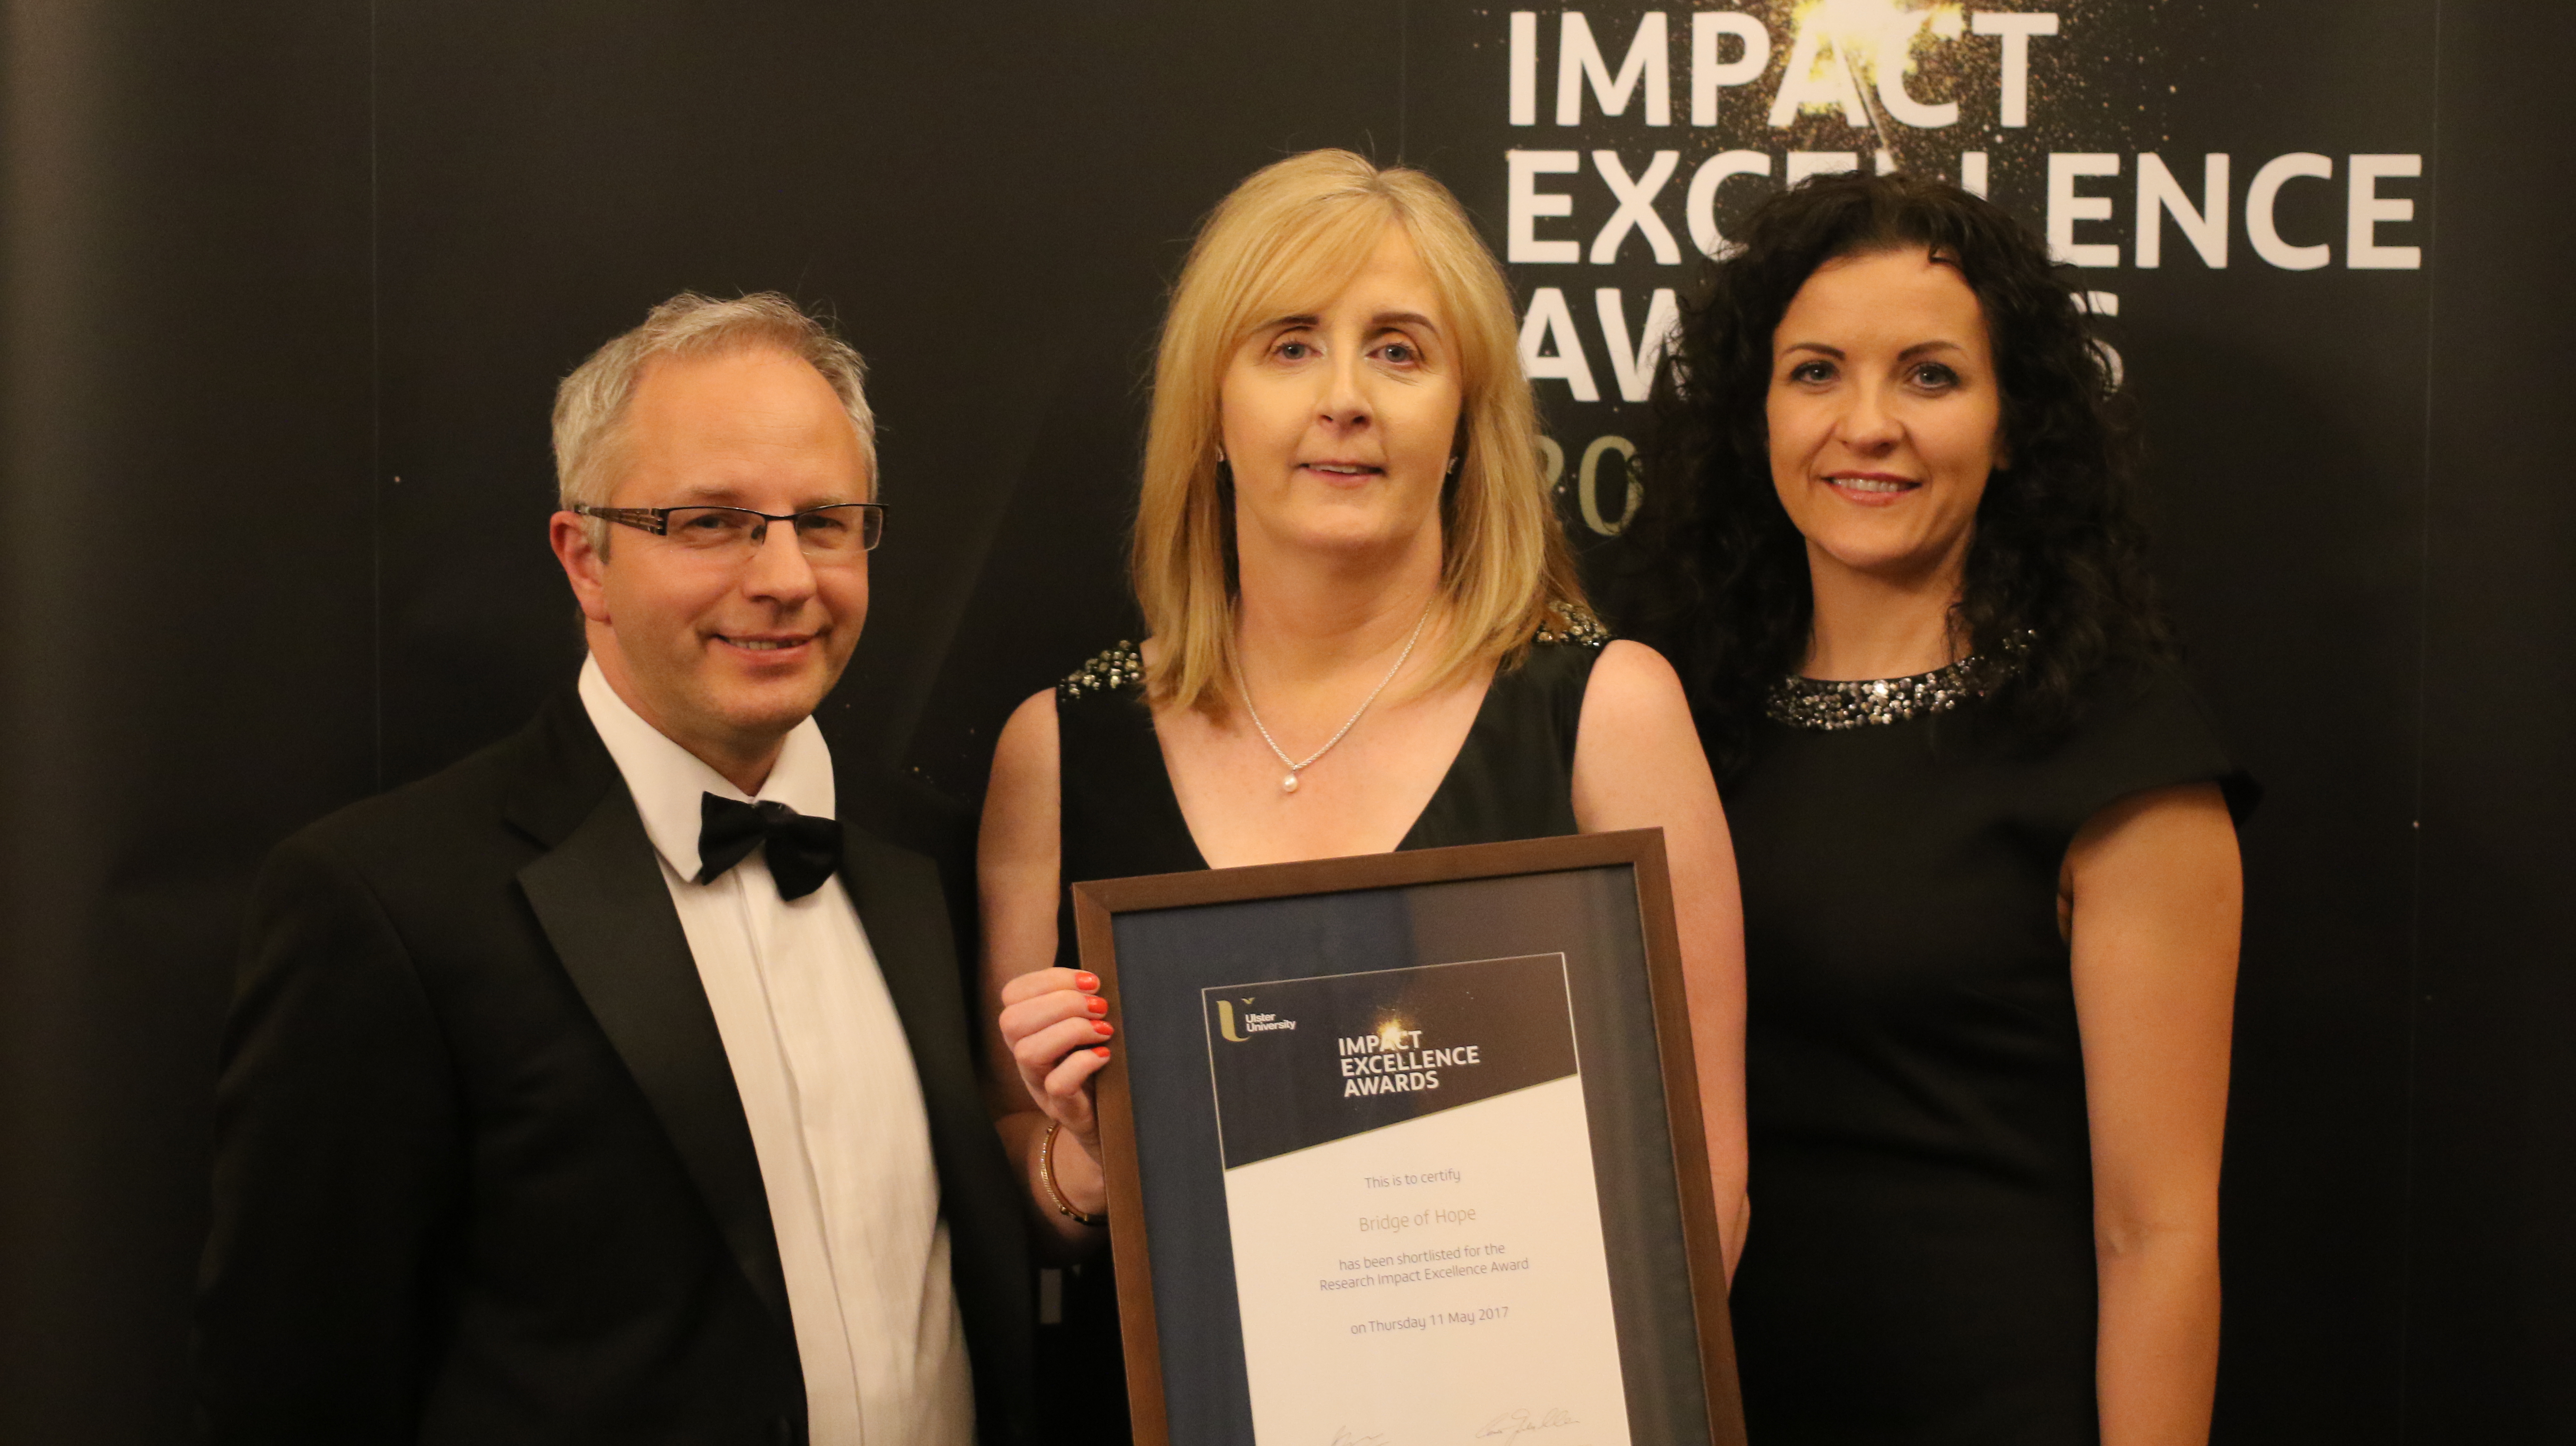 Ulster University Impact Excellence Awards 2017 at Belfast Harbour Commission. TJI Director Rory O'Connell, ACT Head of victims & Mental Health Services Irene Sherry & TJI Research Manager Lisa Thompson. Bridge of Hope was shortlisted for its partnership work with TJI on the Grassroots Toolkit.